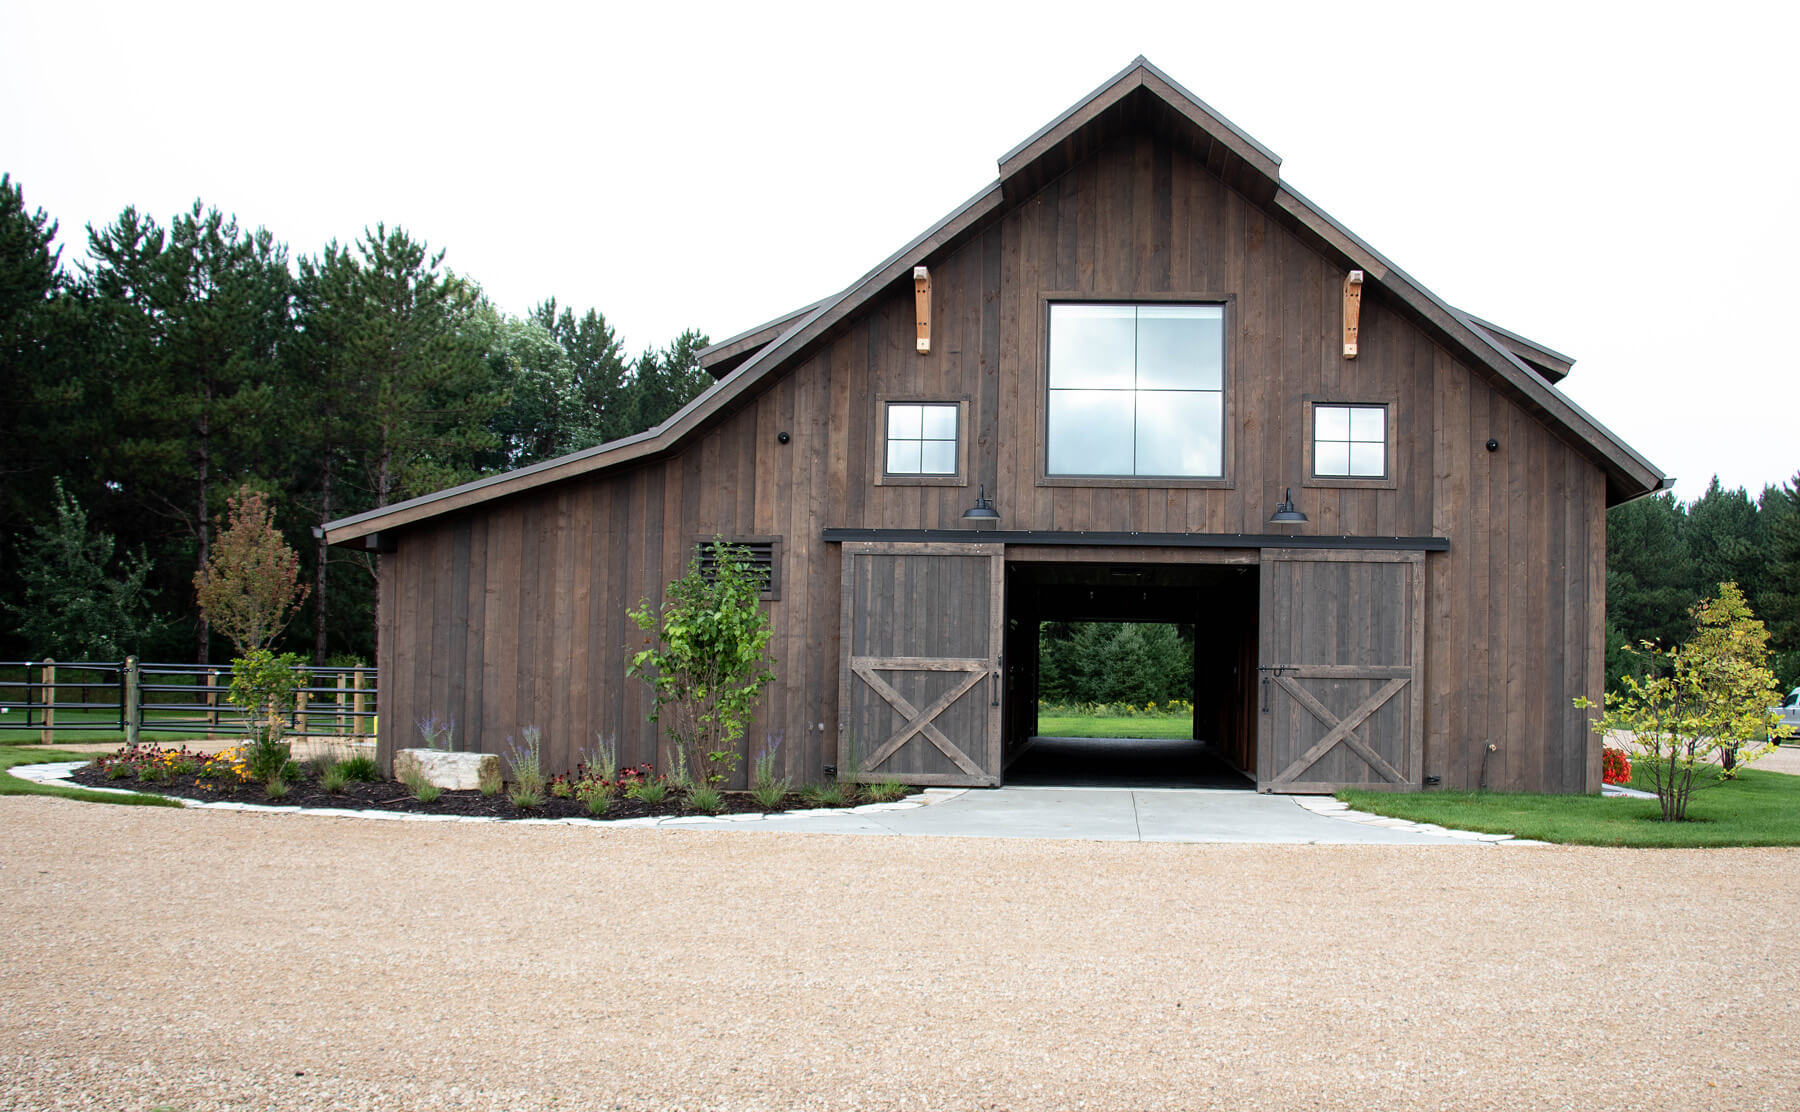 Twin Cities New Construction Barn Pros Equestrian Barn Stillwater Minnesota exterior front view built by Red Pine Builders